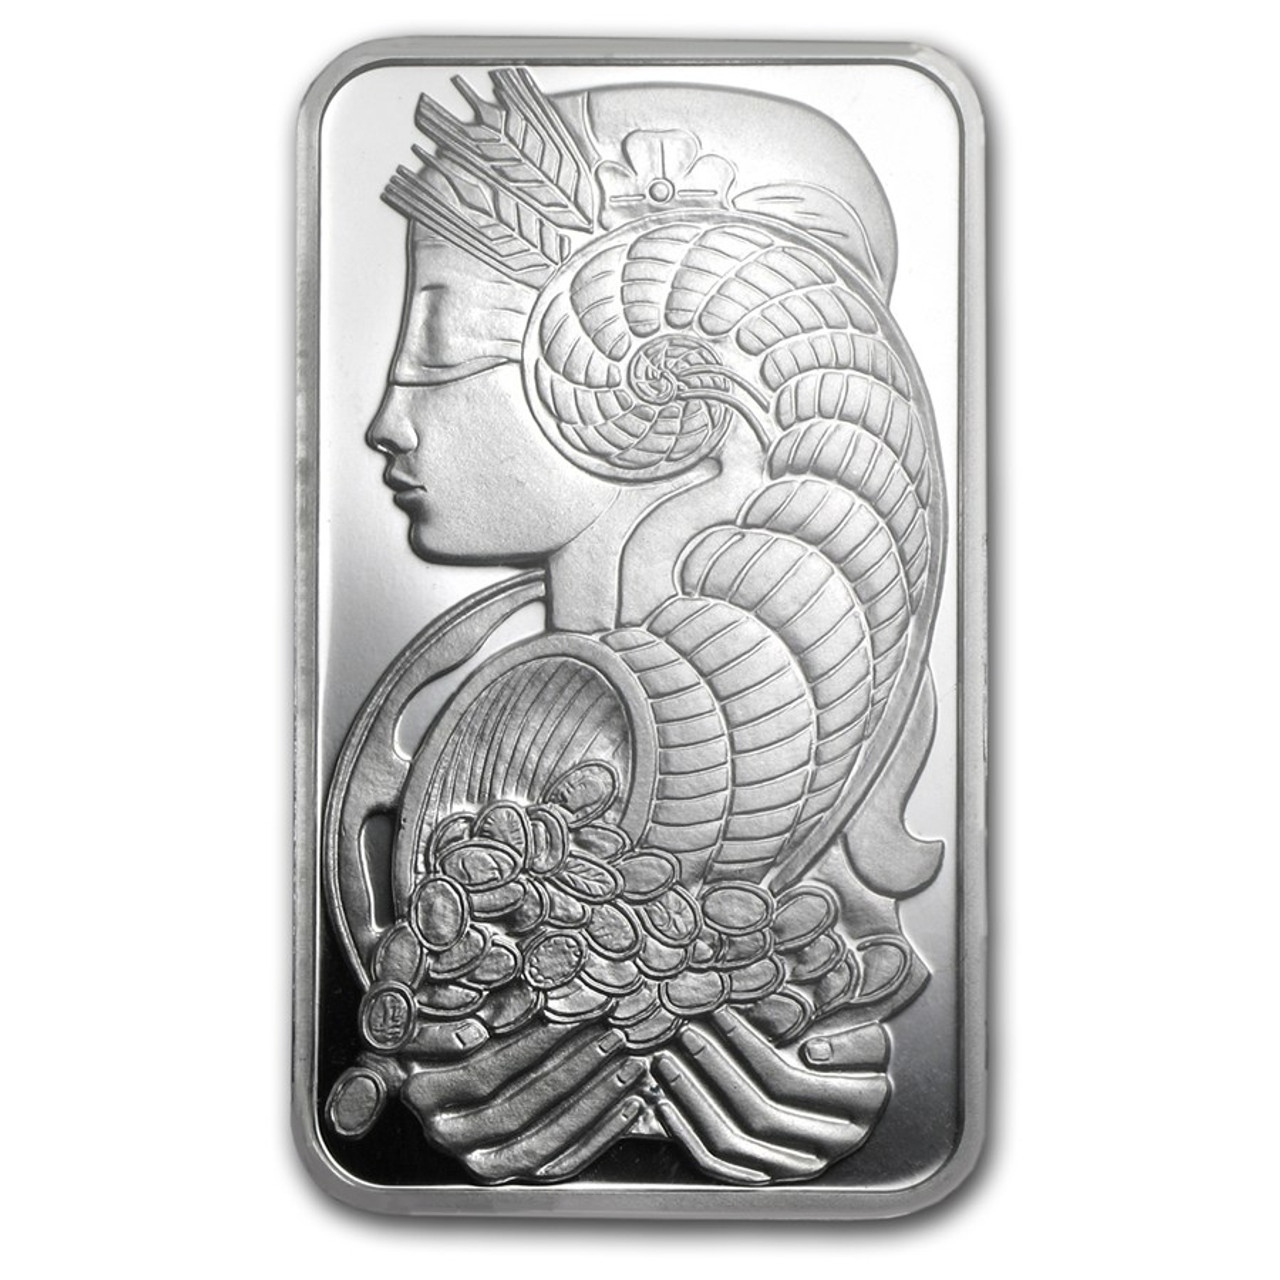 1 gram .999 Fine Silver PAMP Suisse Platinum Bar Fortuna Style in Sealed Assay